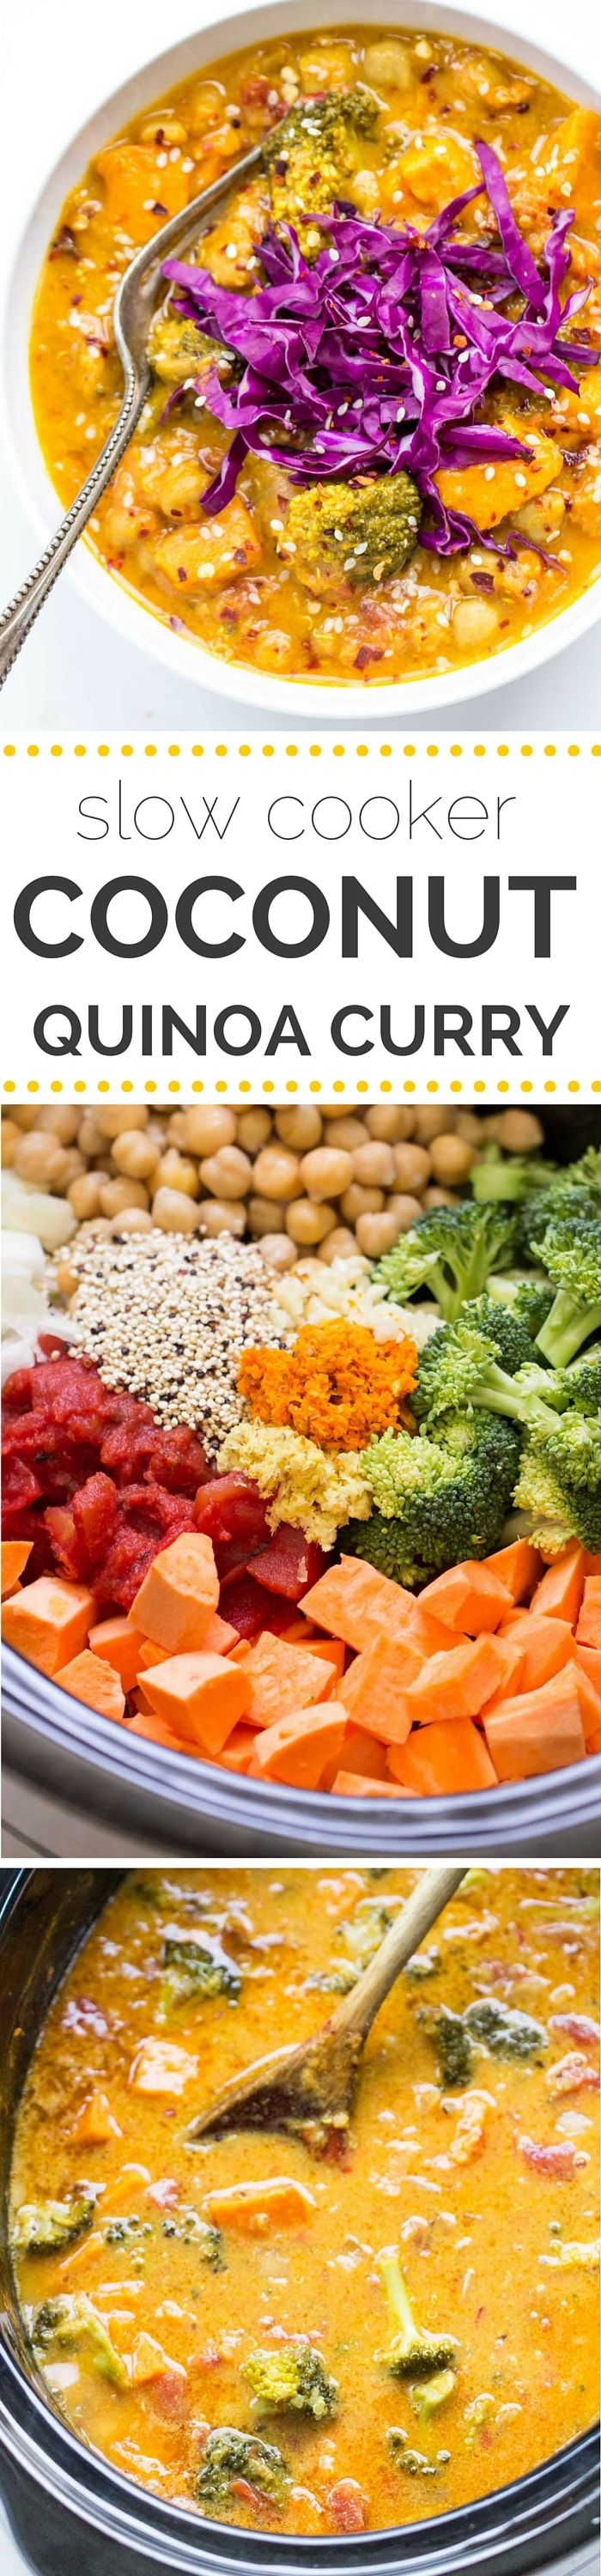 COCONUT QUINOA CURRY -- made in the slow cooker with only a few simple ingredients. Only fresh, wholesome ingredients, it's naturally gluten-free AND vegetarian too! - I Quit Sugar